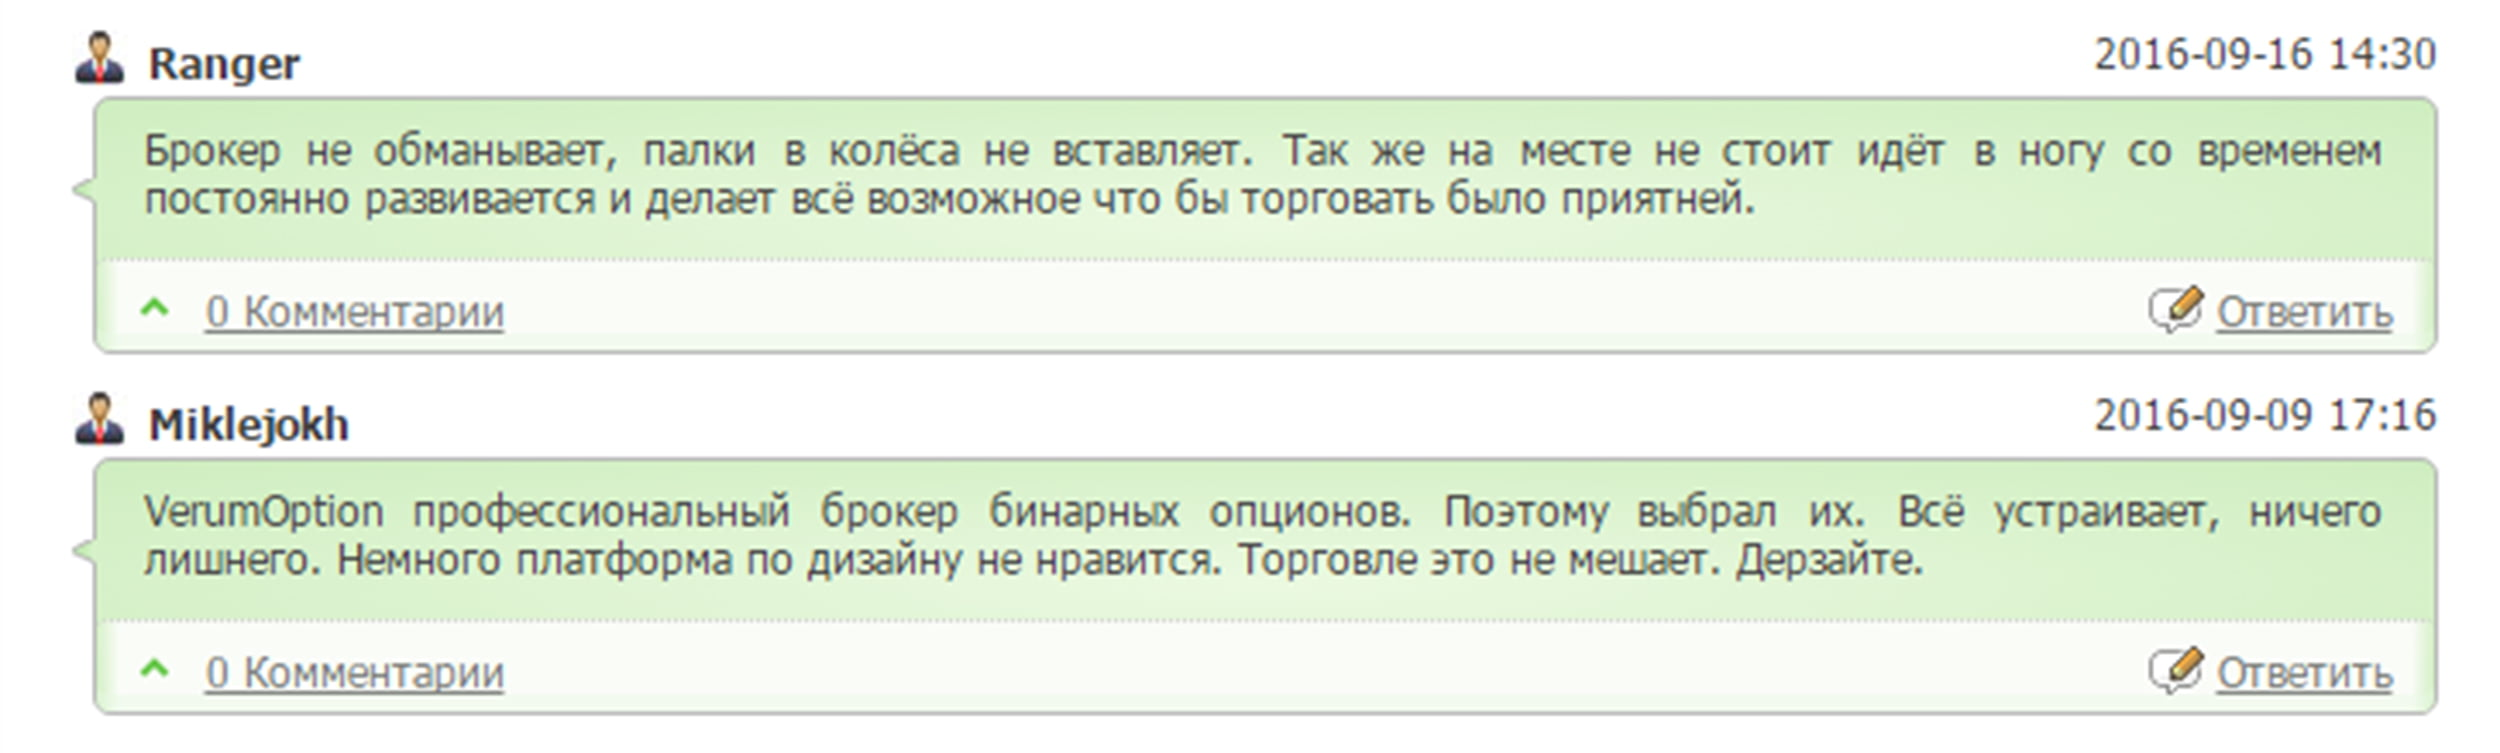 Отзывы о Verum Option